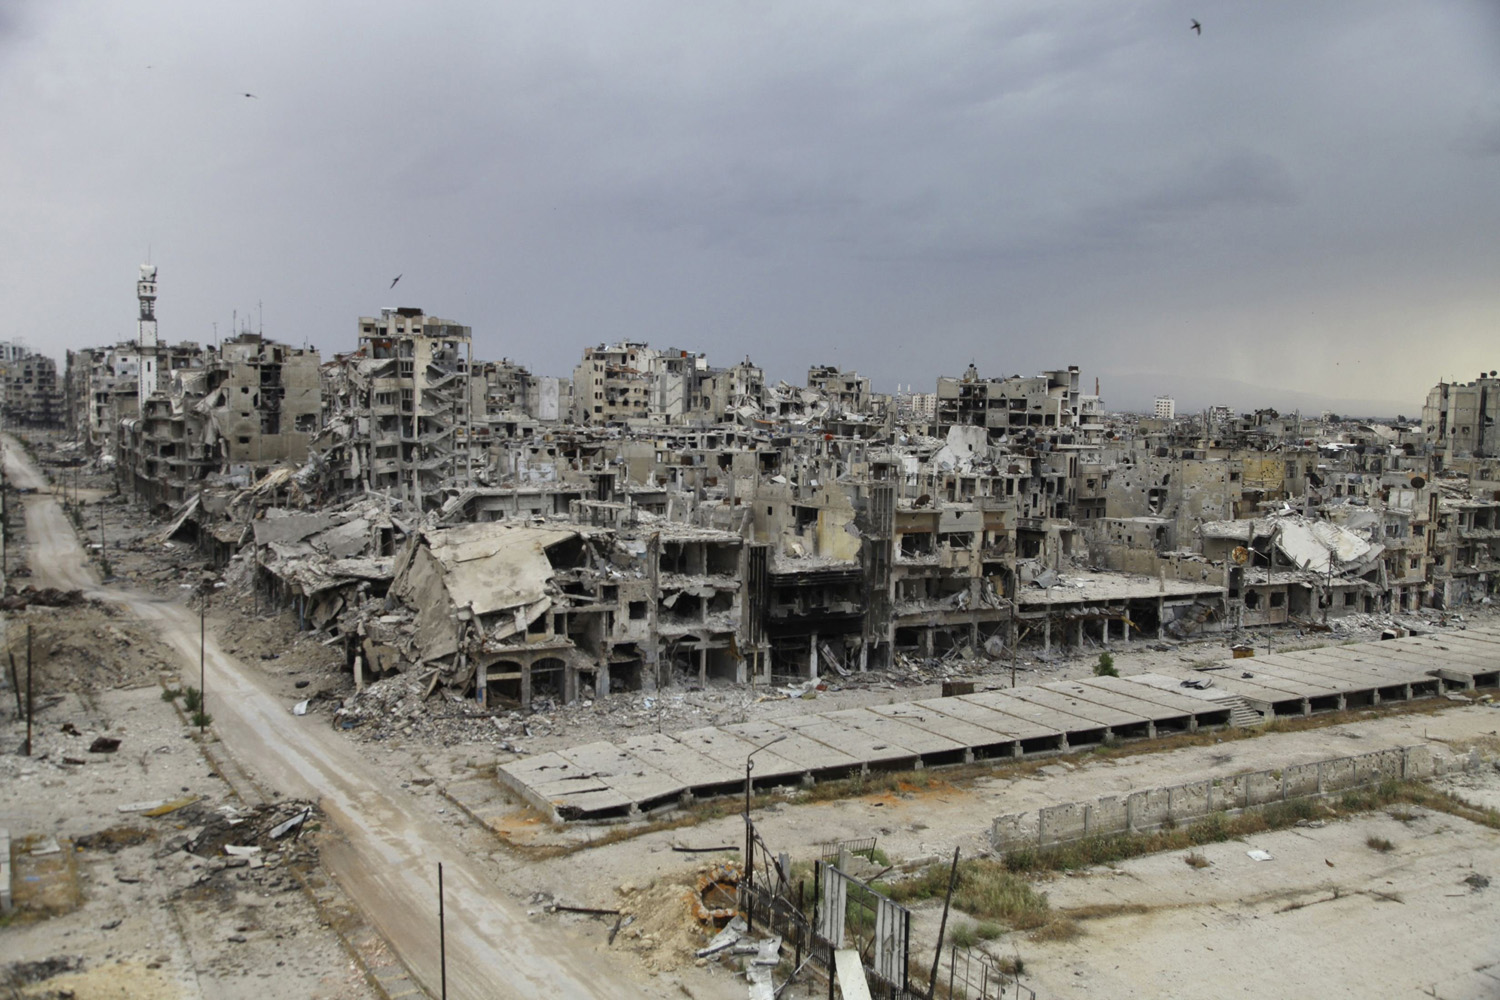 May 10, 2014. Destroyed buildings are pictured, after the cessation of fighting between rebels and forces loyal to Syria's President Bashar al-Assad, in Homs city.